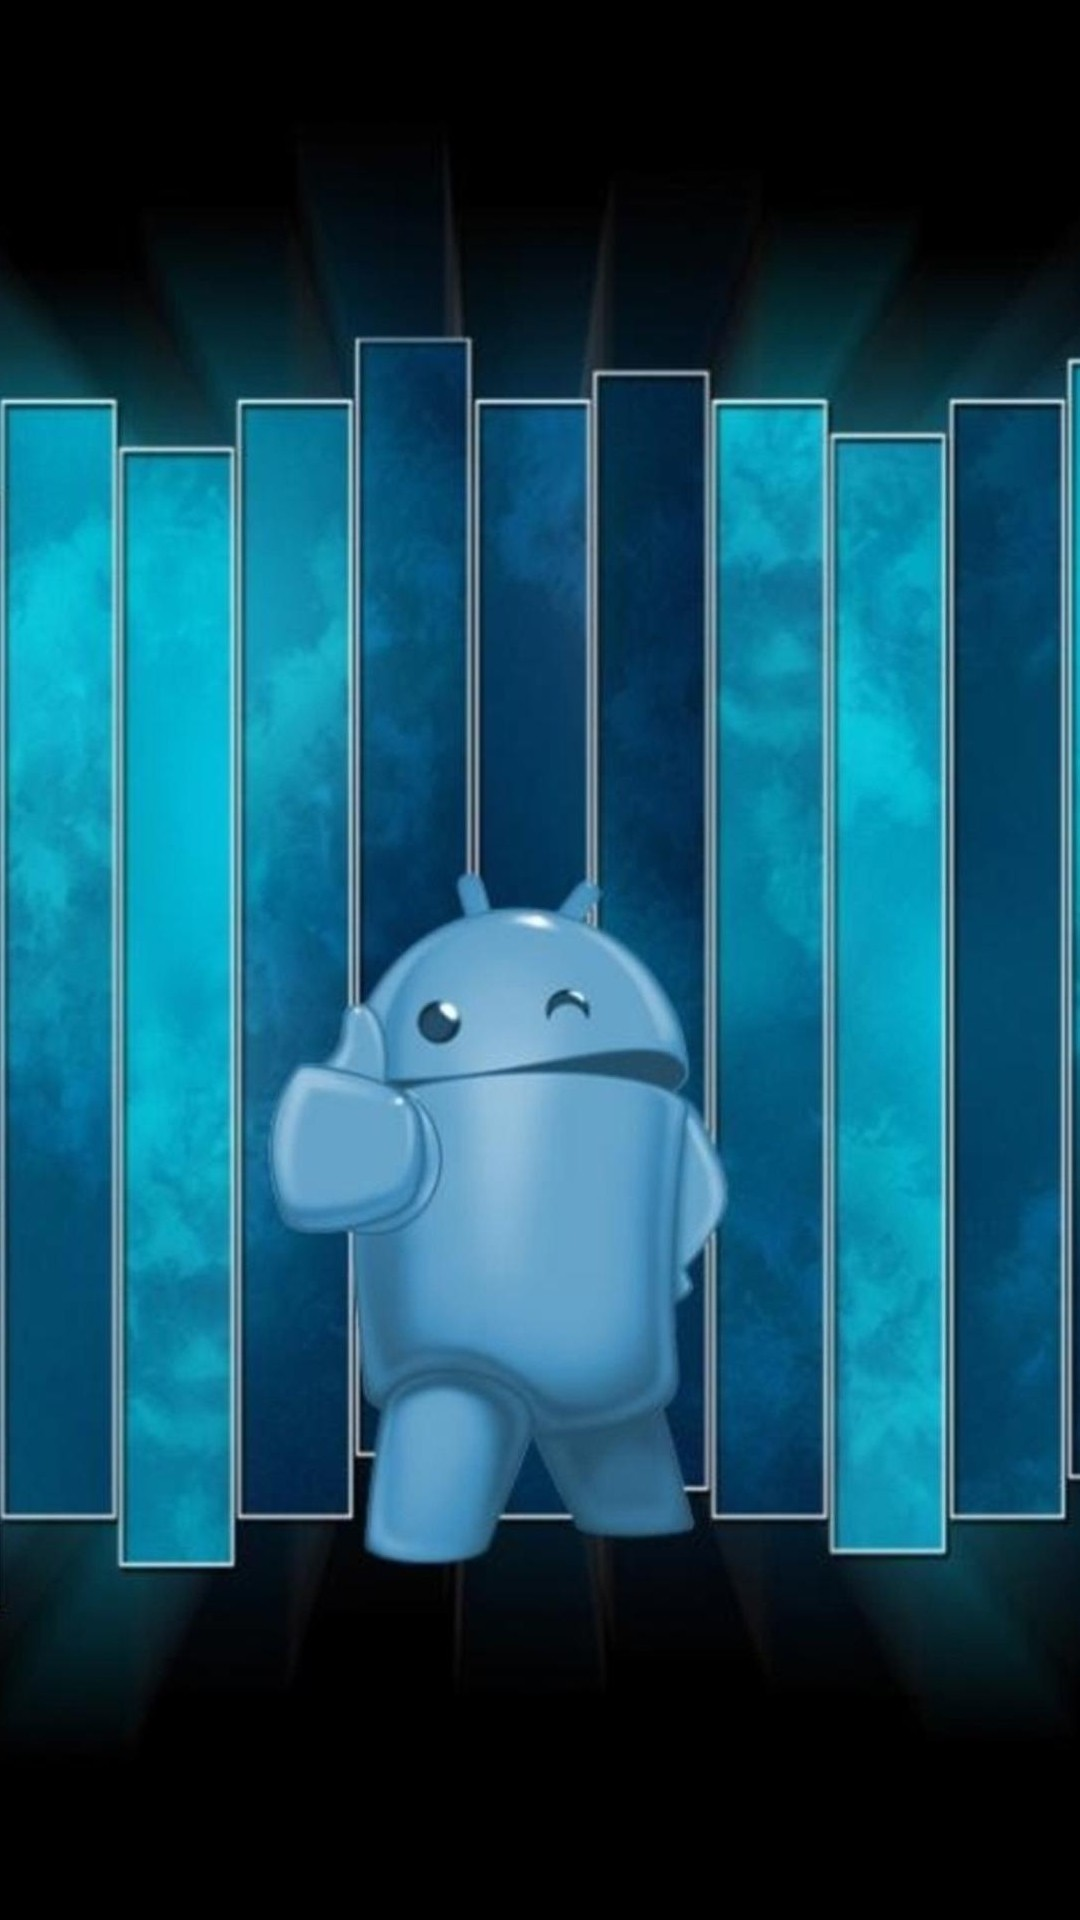 Android Thumbs Up Blue Smartphone Wallpapers Hd Getphotos